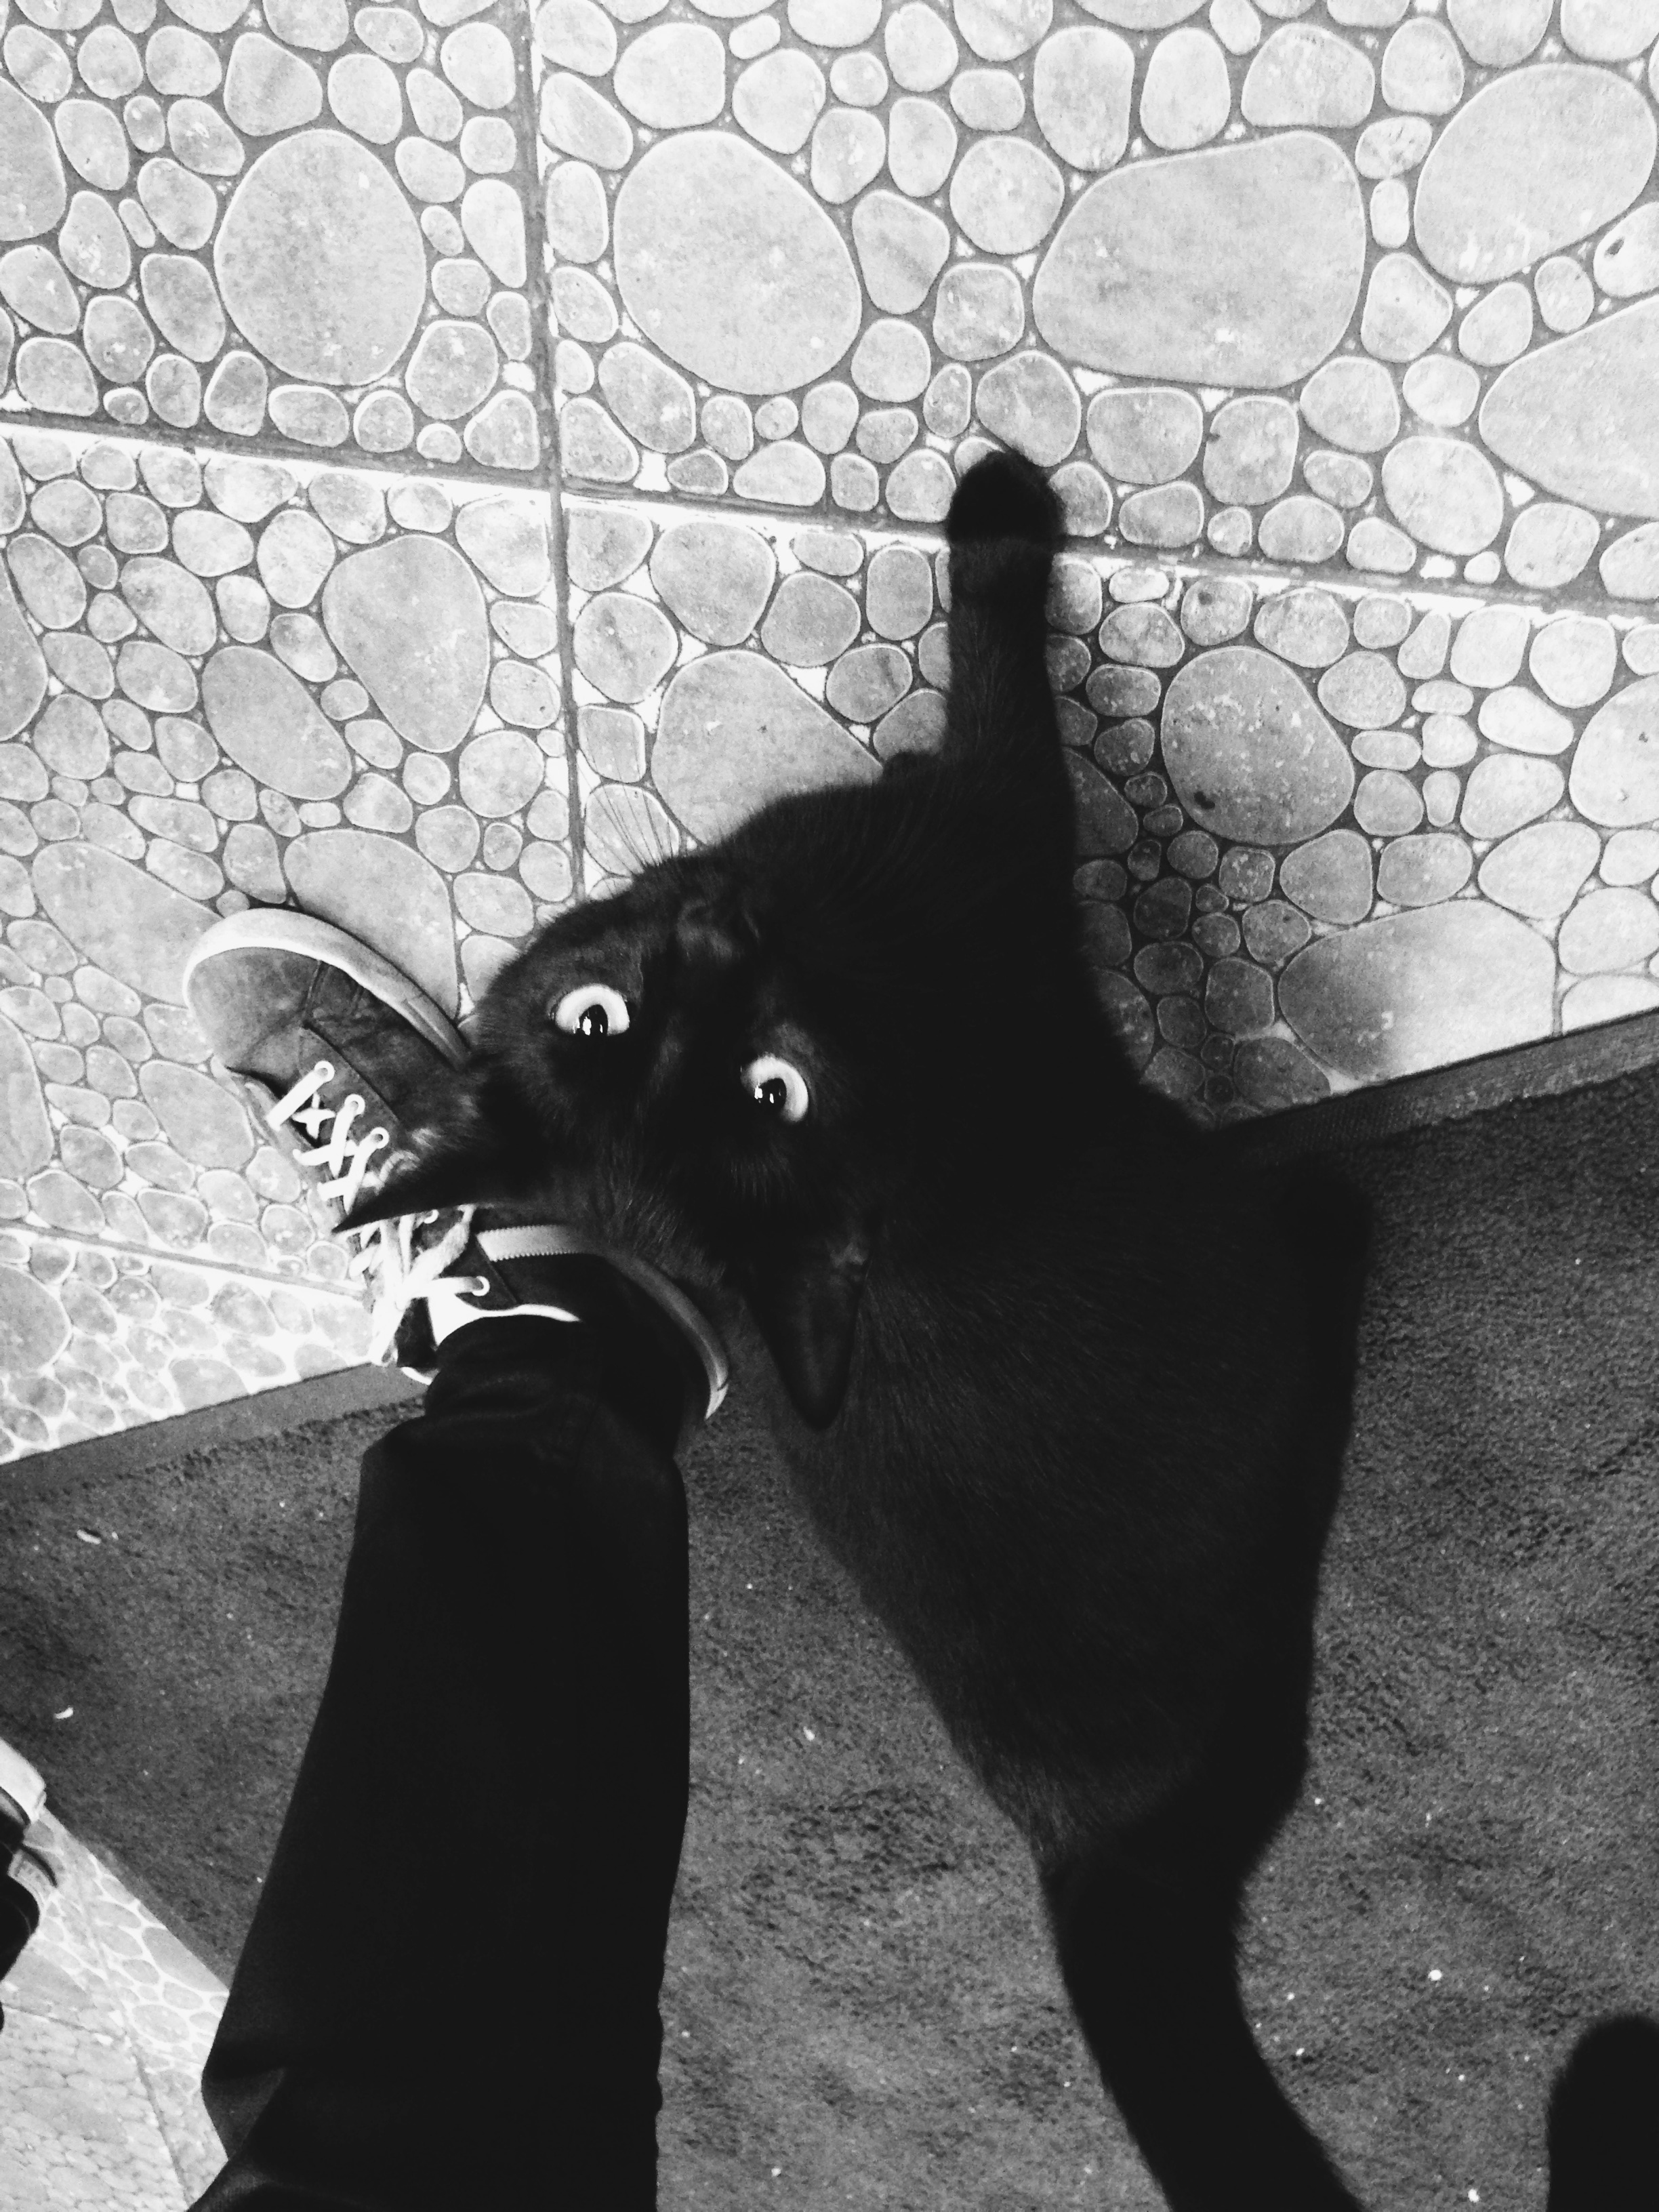 """Giant black cat shows up late at night at 24/7 Shawarma place, that also lists """"Crude Oils"""" as a main dish on the menu"""